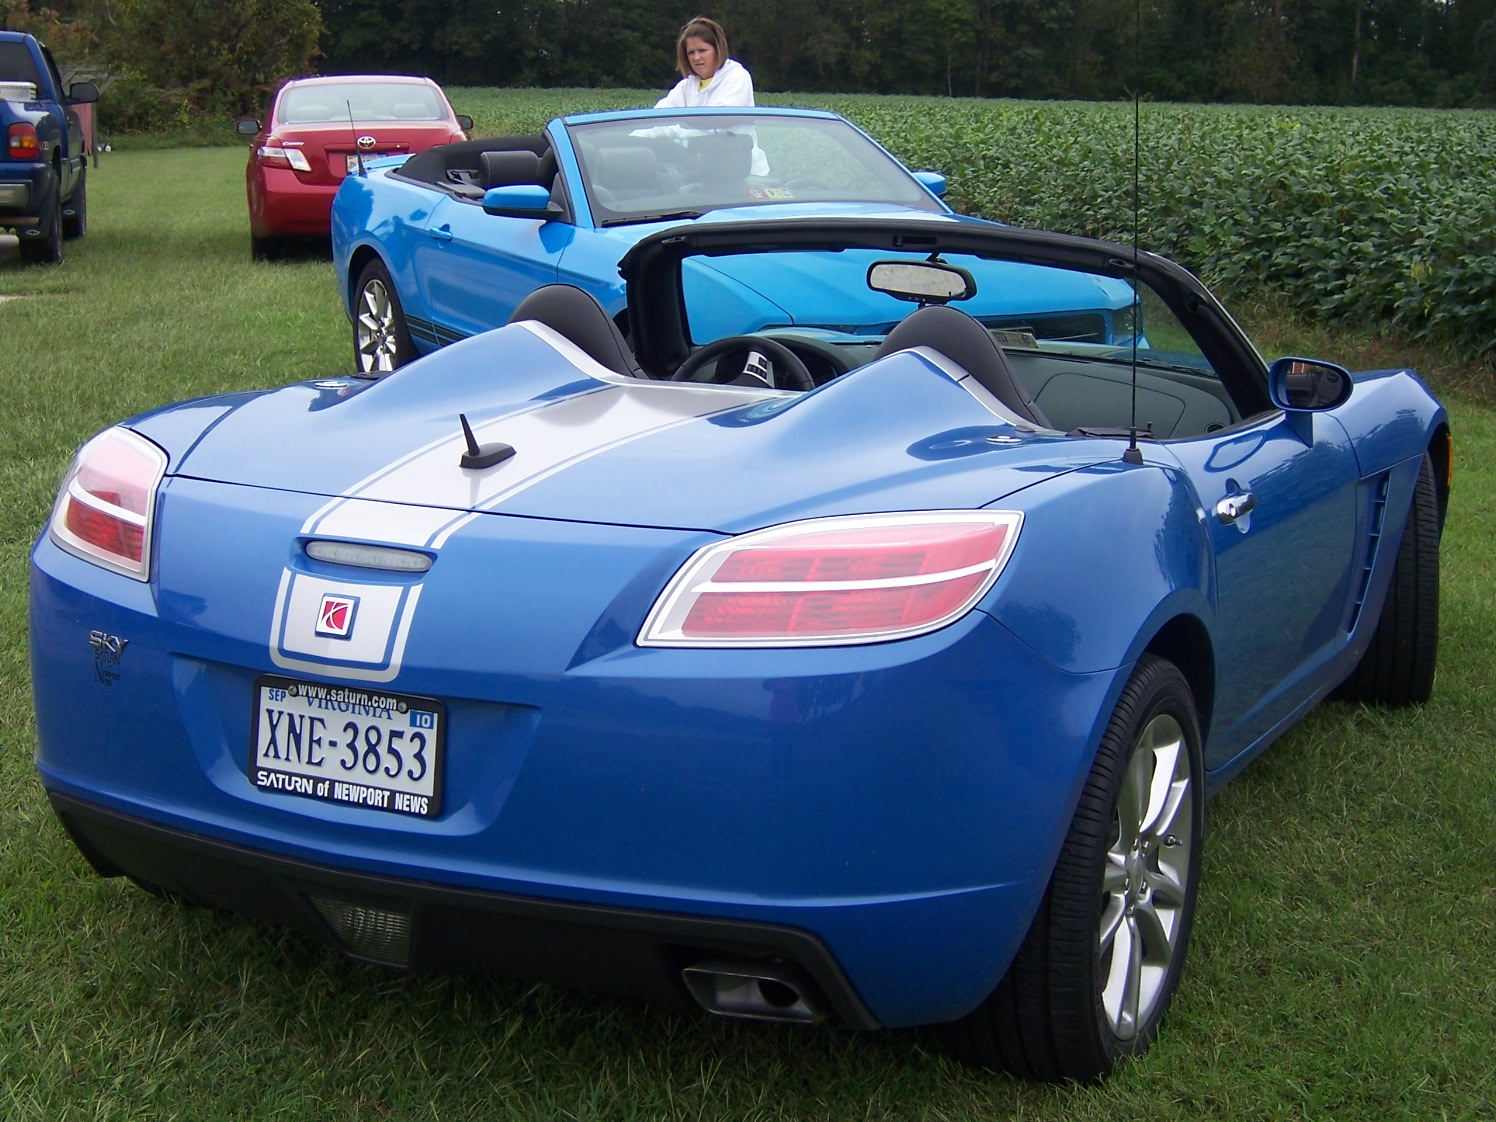 Hydro Blue 2009 limited edition saturn sky for sale-015.jpg